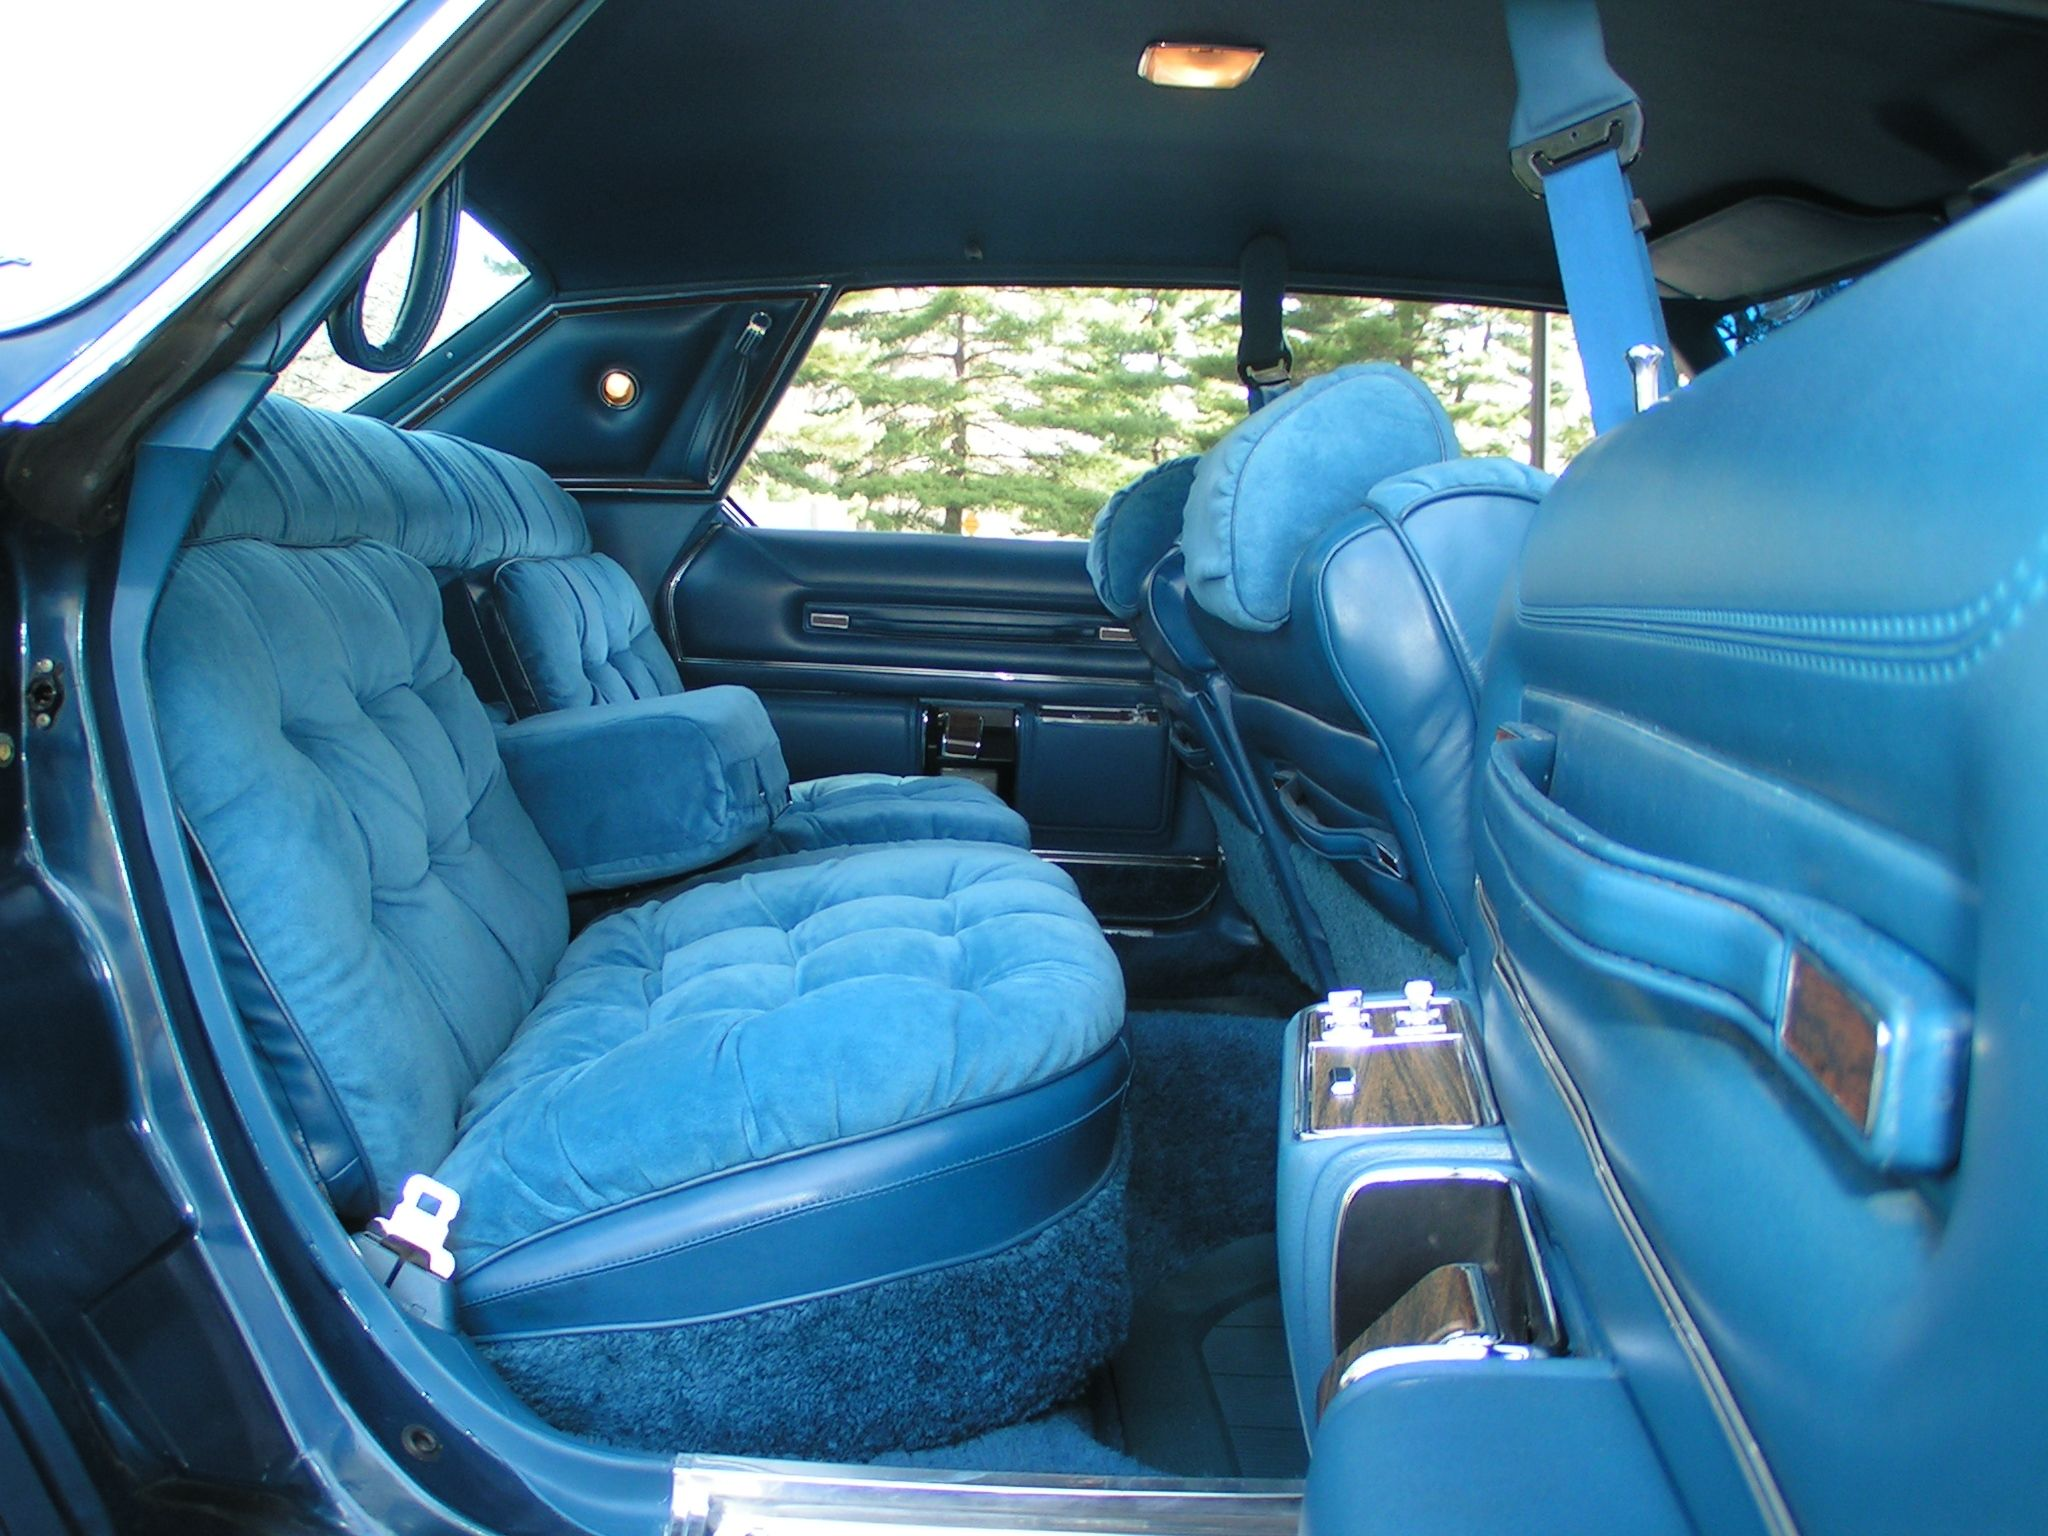 This New Yorker Brougham Interior From The Late 70s Represented A Transplant Of Sorts Of Luxury